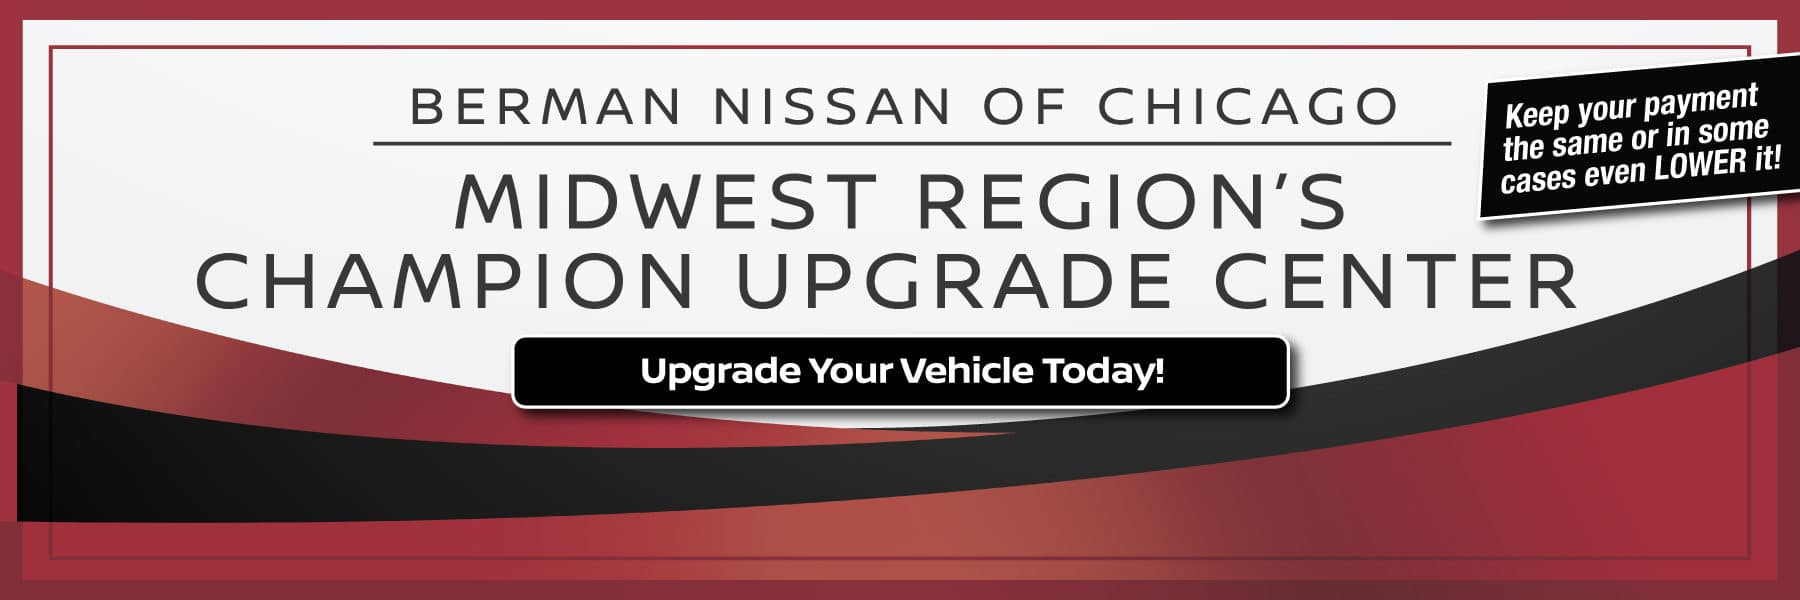 Visit The Upgrade Center at Berman Nissan of Chicago